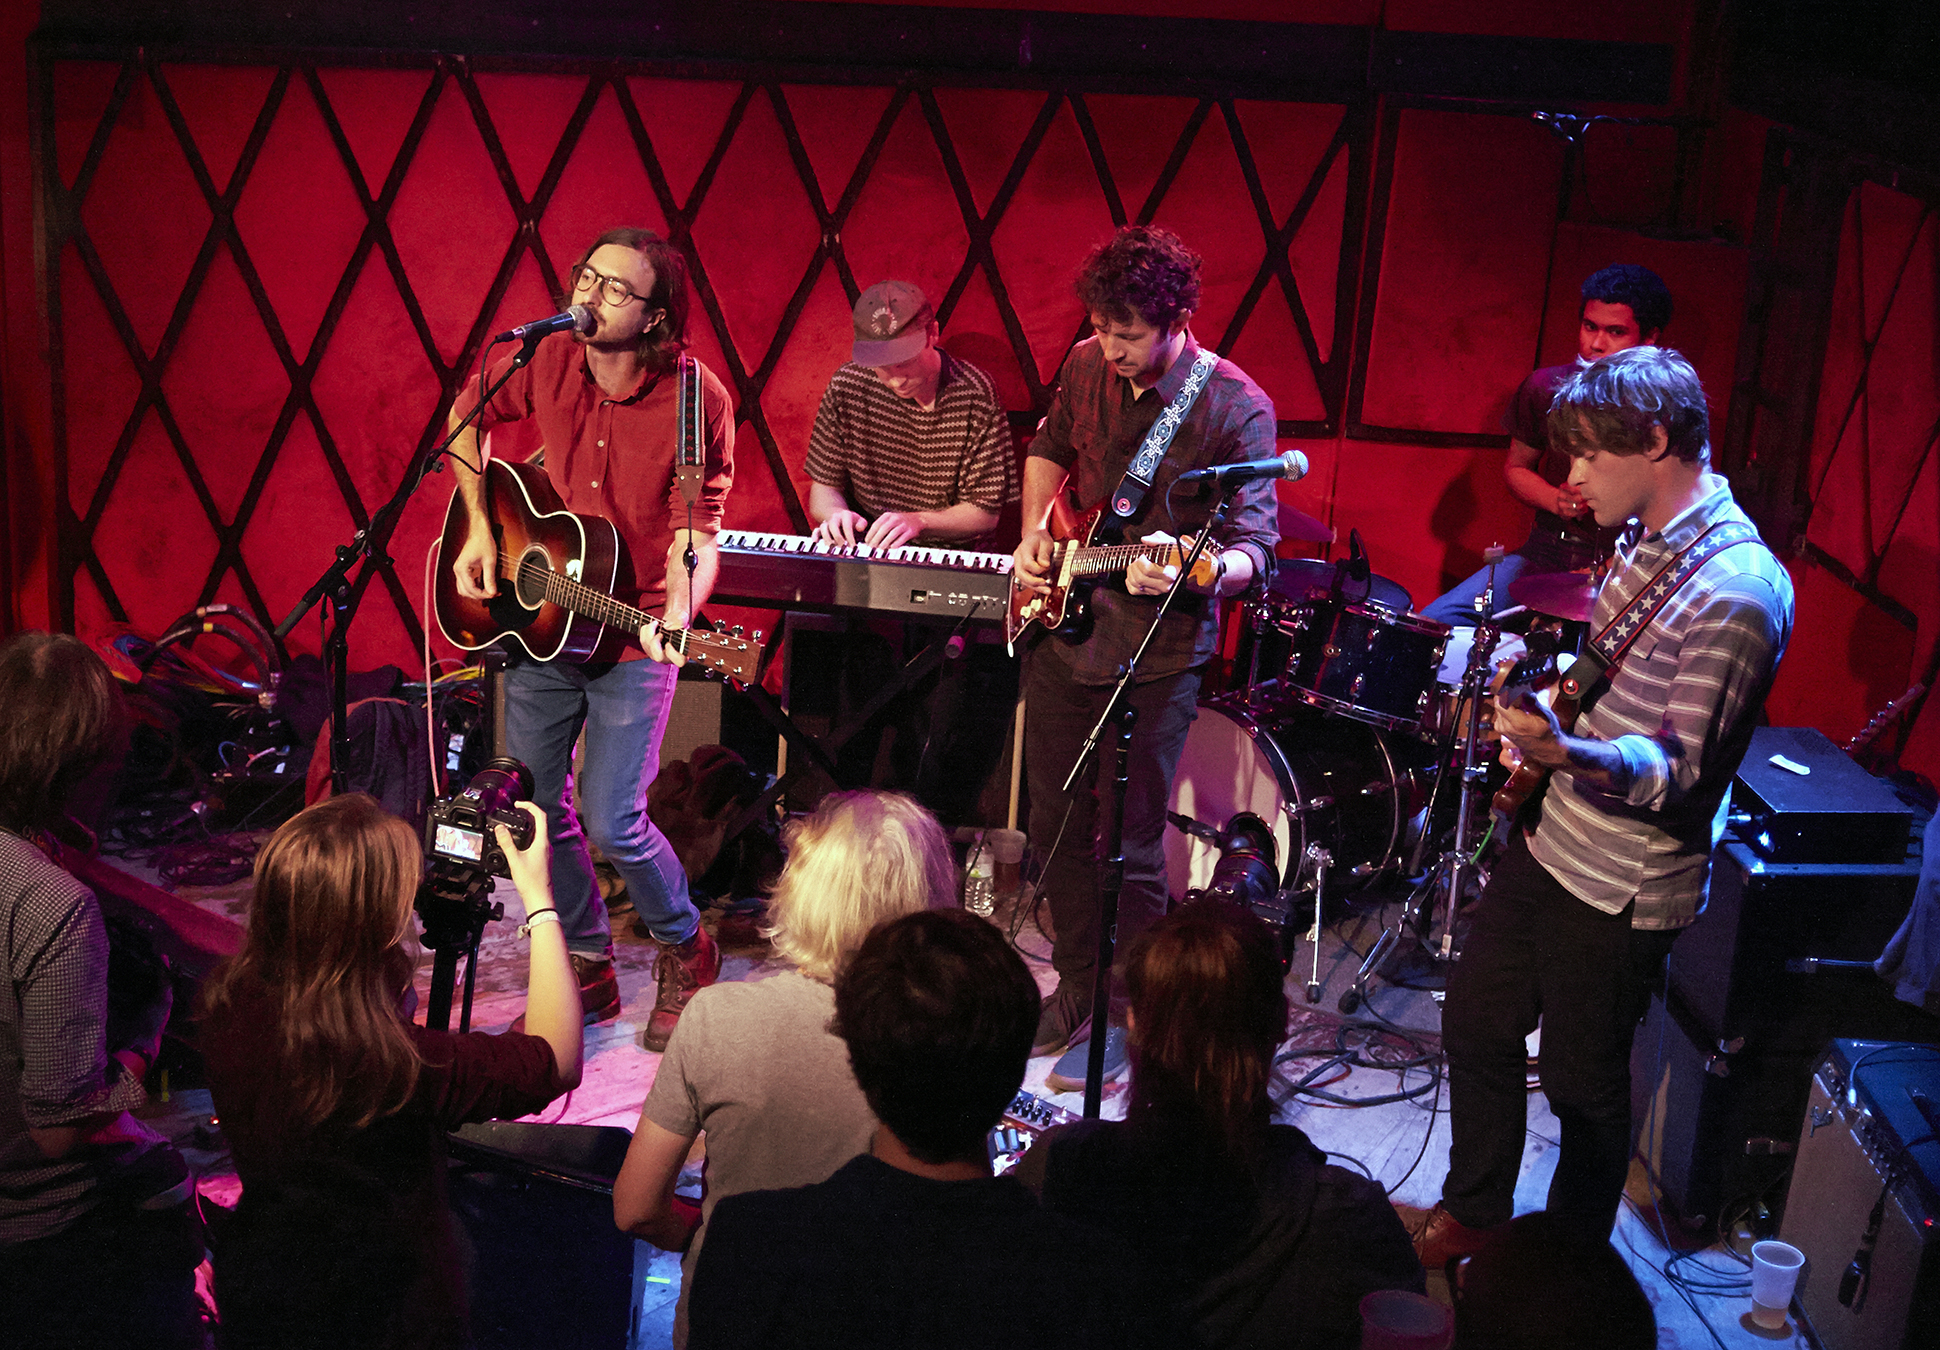 FUV Live at CMJ with Martin Courtney (photo by Gus Philippas/WFUV)